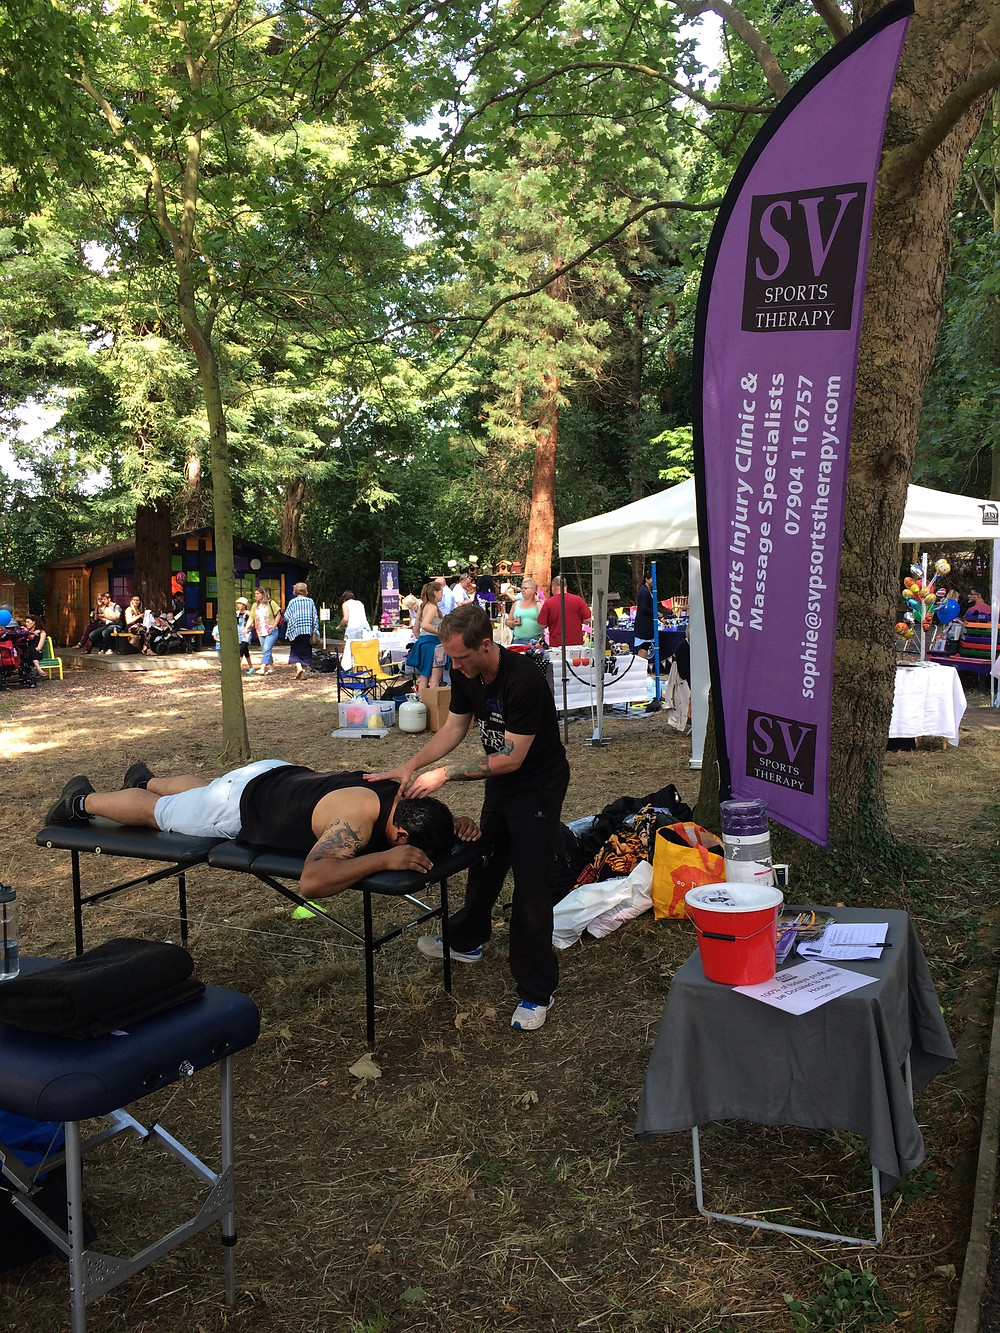 SV Sports Therapy attends Haven House Summer Fair